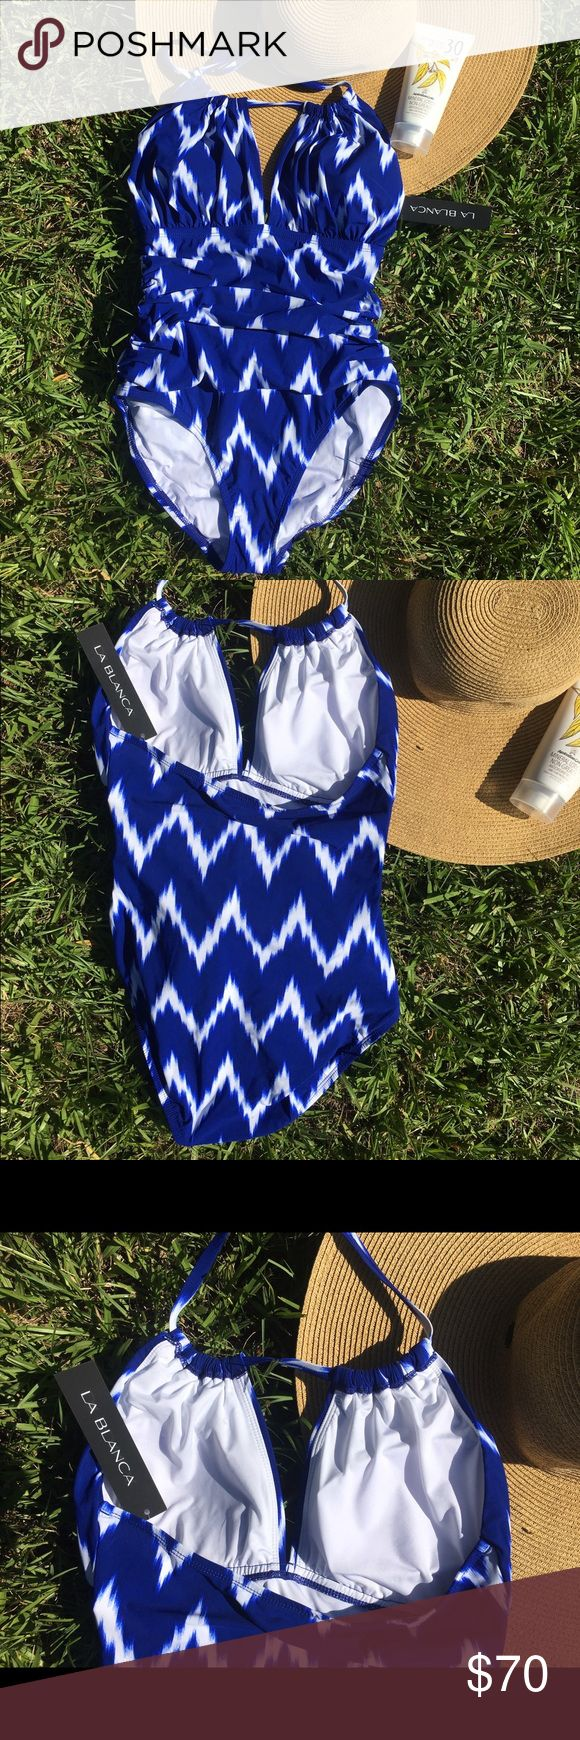 La Blanca slimming 1 piece,sz 8,NWT La Blanca one piece is size 8 and new with tags. Swimsuit has tummy control and has slimming ruching on the front. The bottom is full coverage. The top portion has a shelf bra and ties around the neck for a lifting effect. Has a cheerful blue and white print that looks great on all skin tones! Feel free to message me with any questions or make offers! La Blanca Swim One Pieces